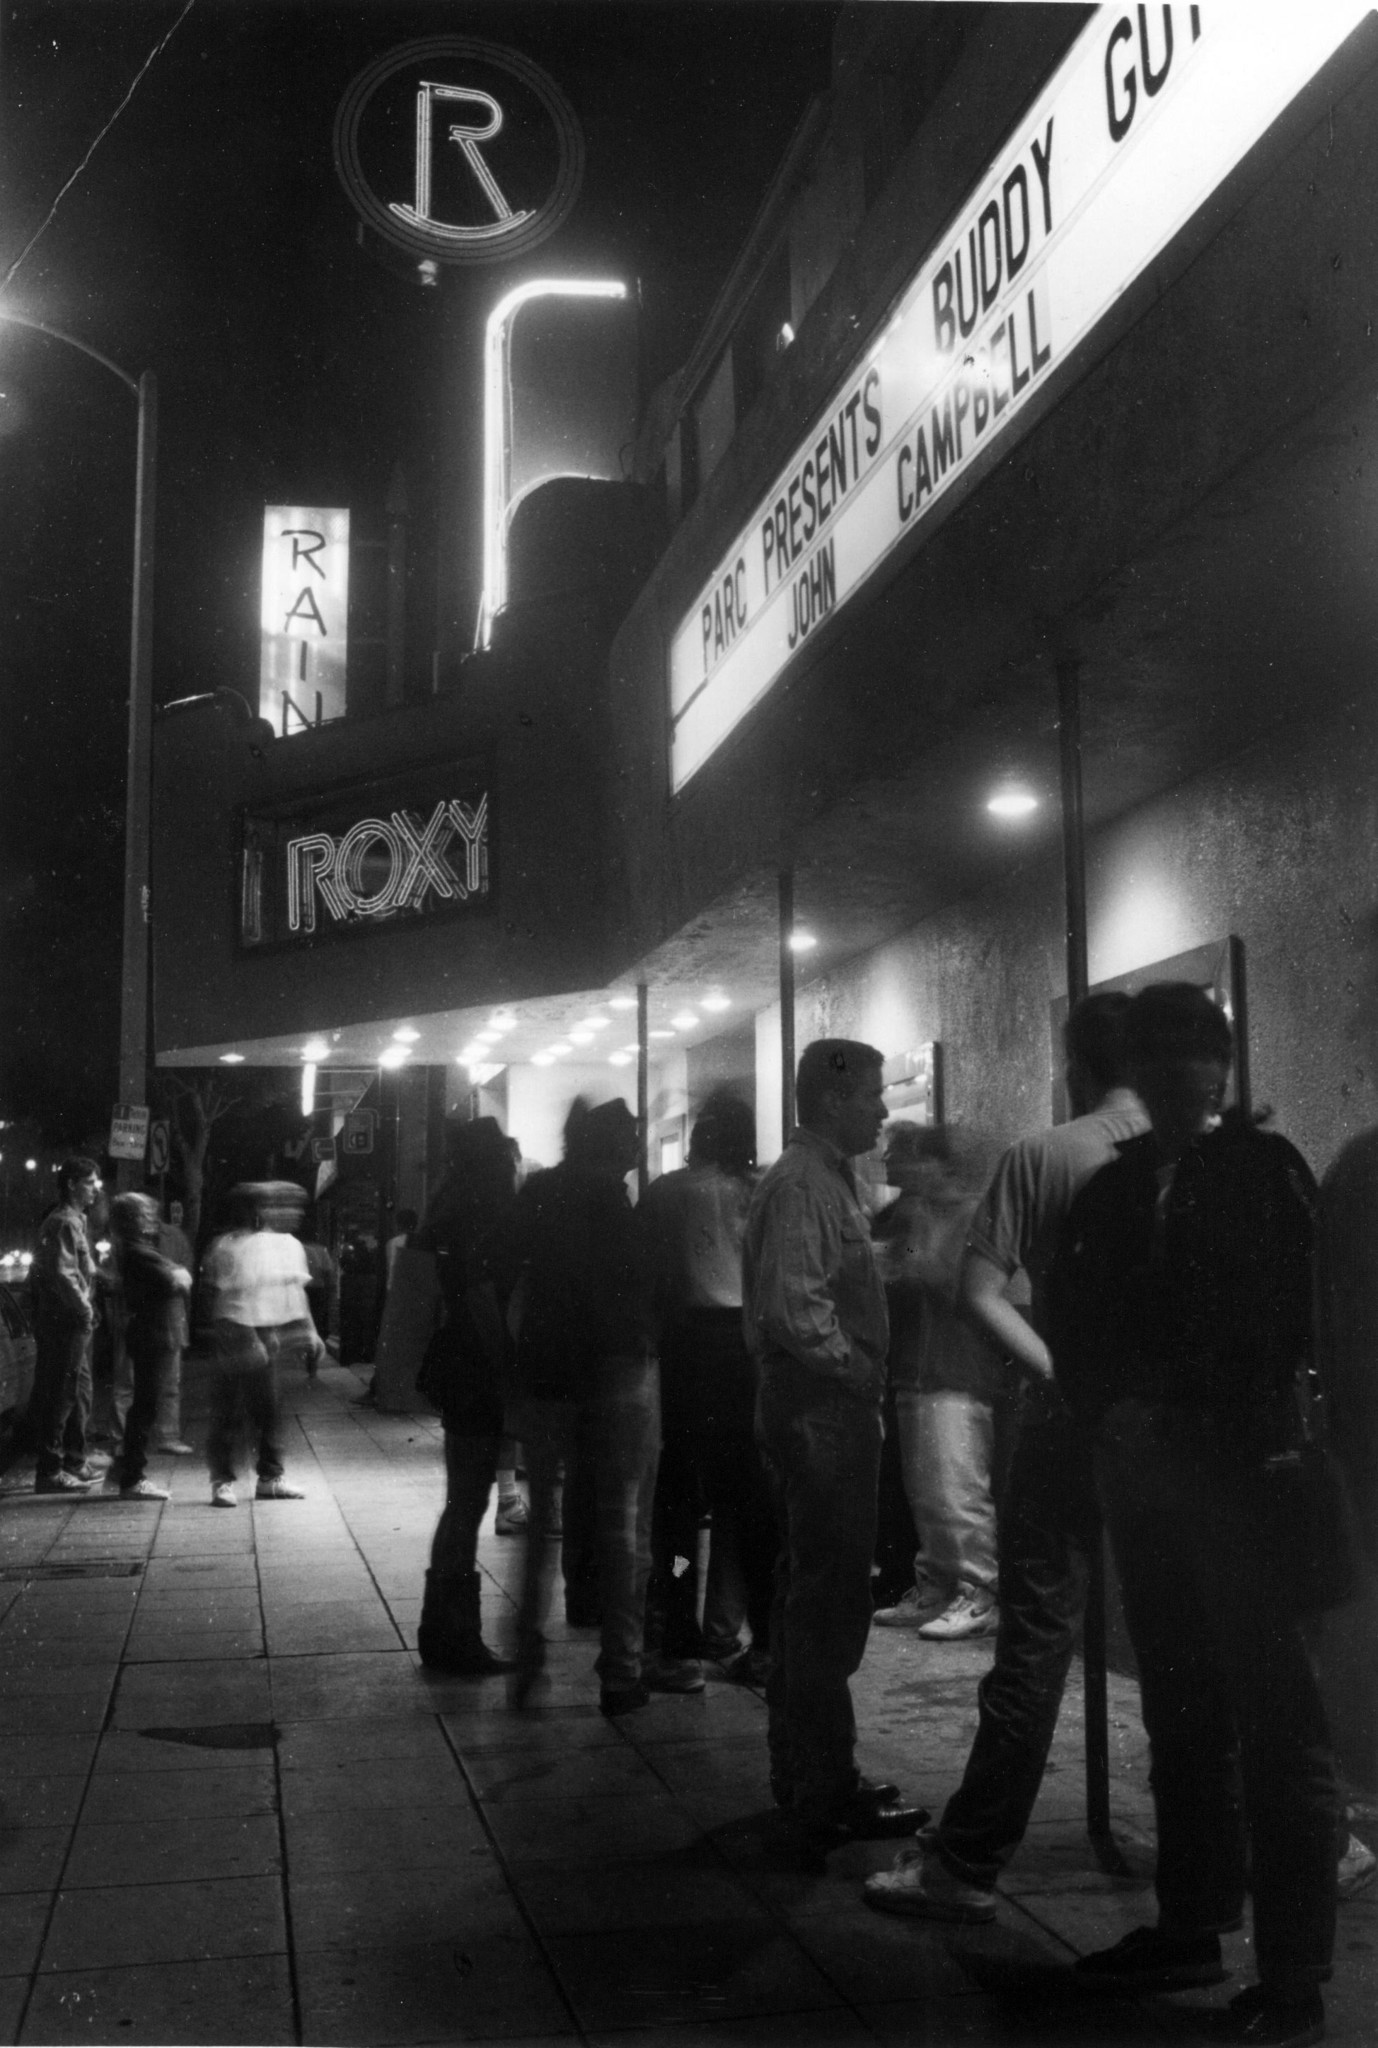 People gather outside the Roxy Theater in 1991.